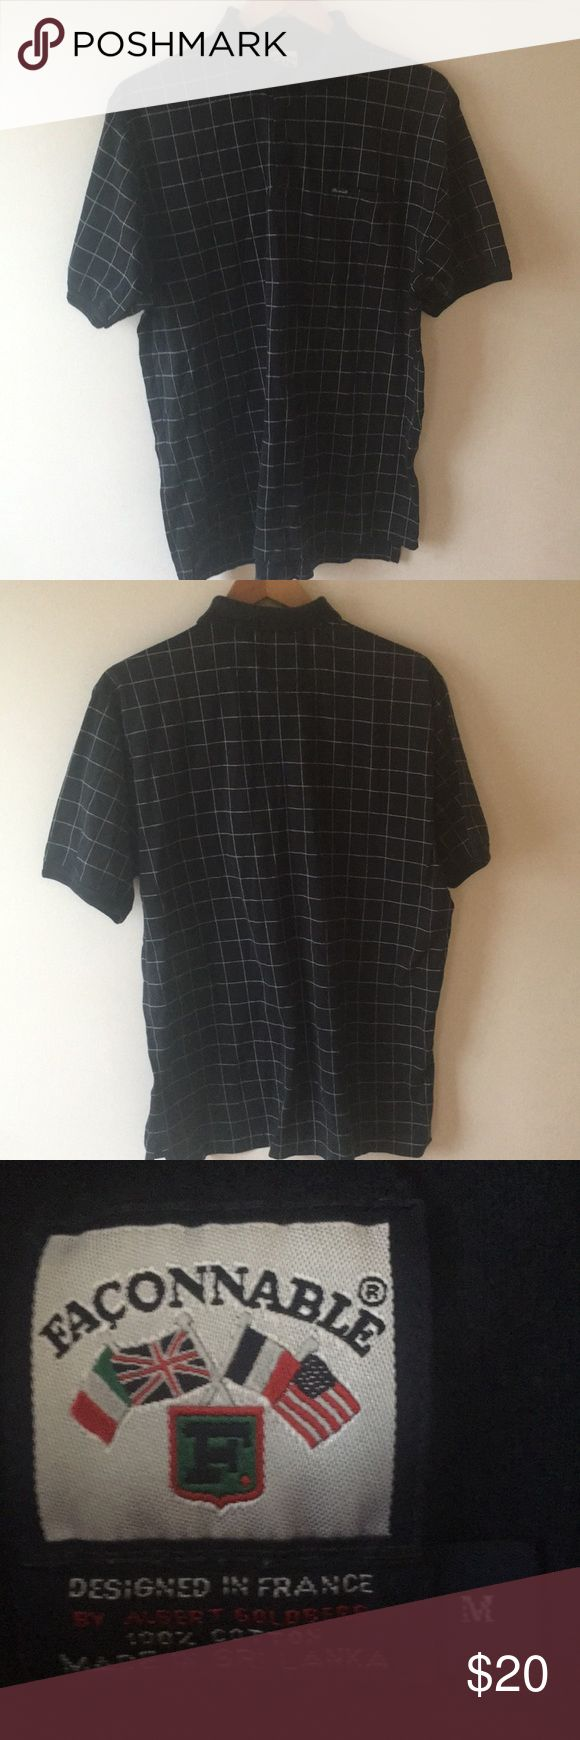 Facconable Polo Shirt Navy/White Plaid Men's M Facconable Polo Shirt Navy/White Plaid Men's M, 100% Cotton,intricate white stitching for the plaid, Very Good Condition, tiny tear seen in the last photo. Designed in France by Albert Goldberg , Made in Sri Lanka Faconnable Shirts Polos